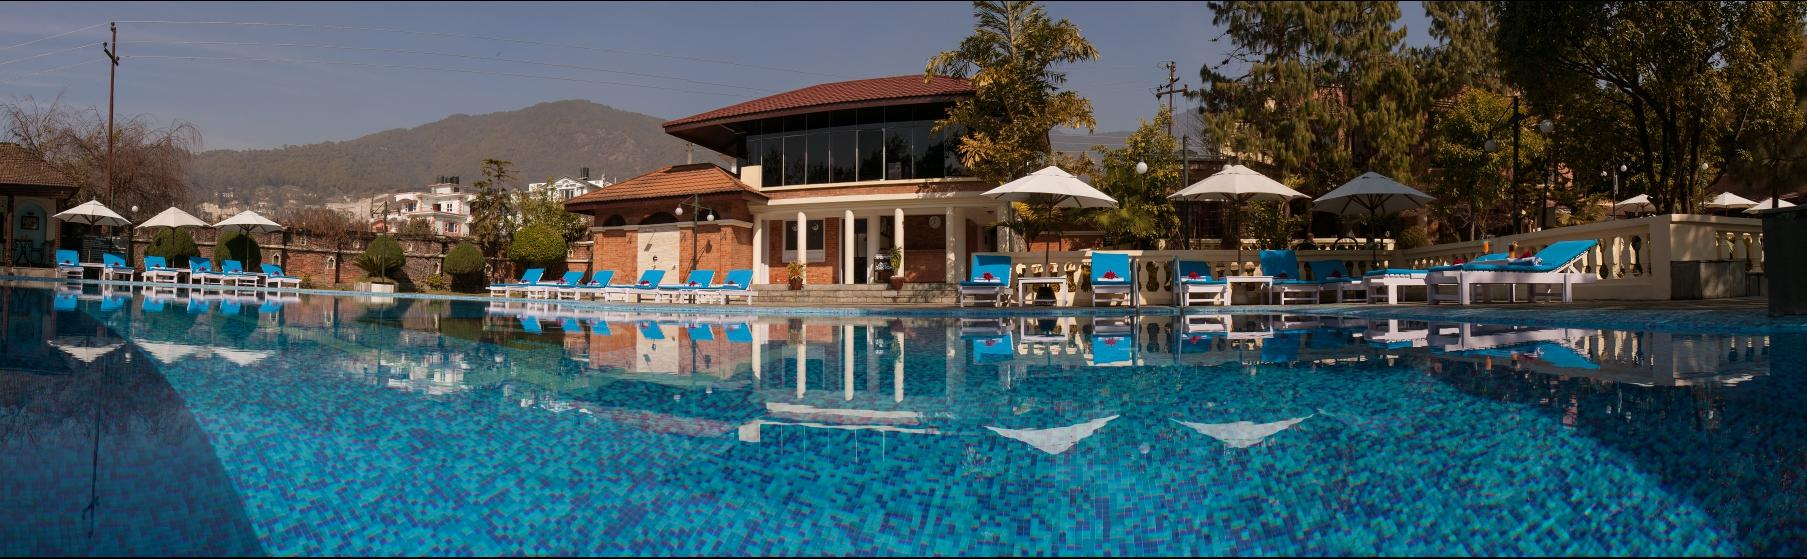 Park Village Hotel & Resort